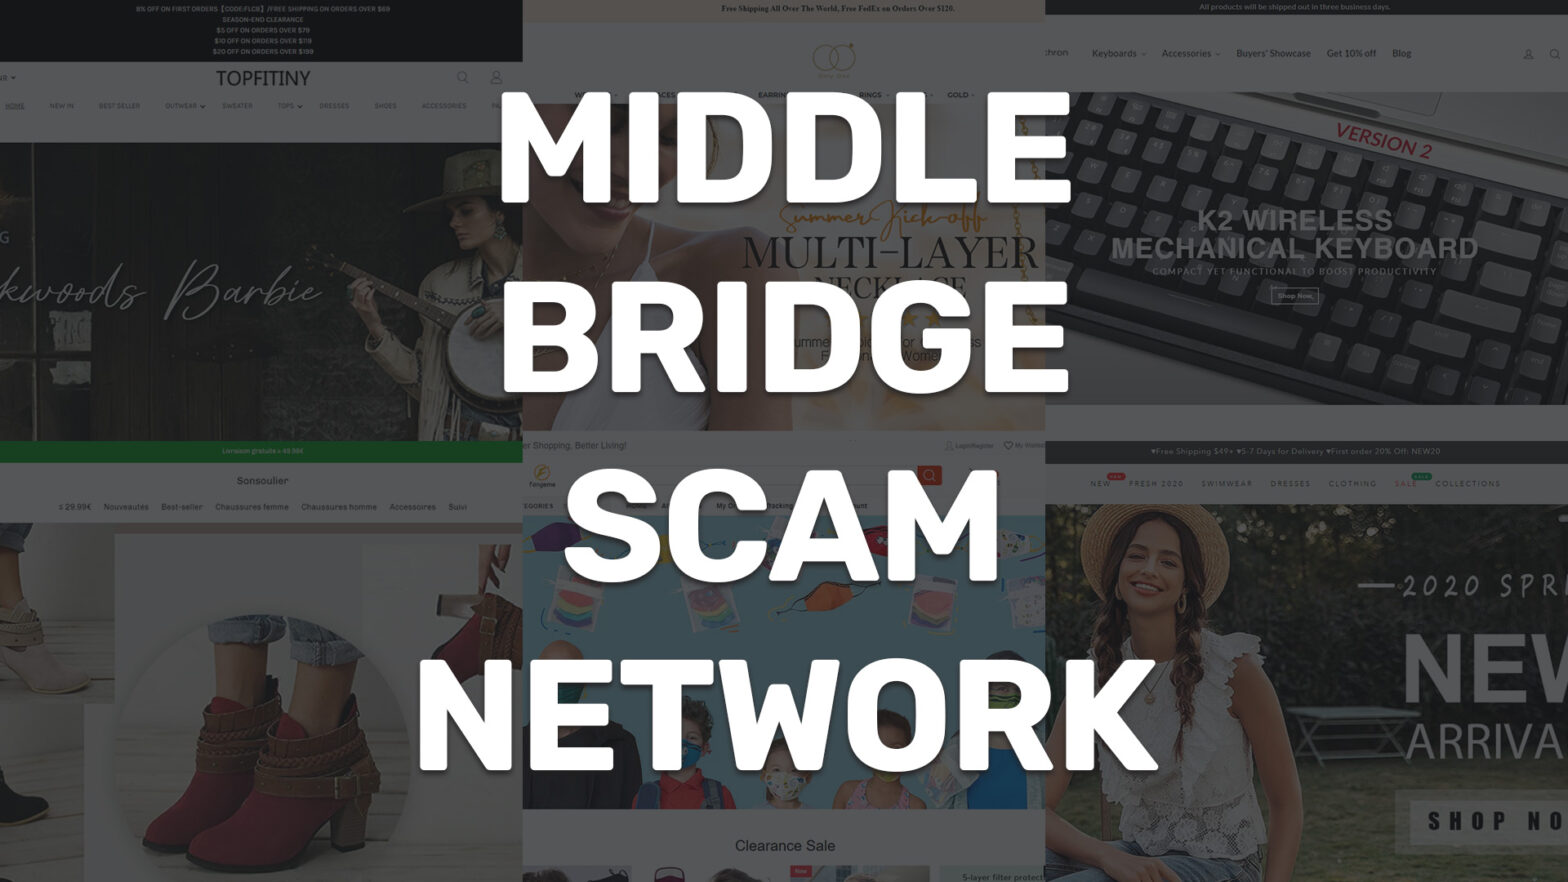 Middle Bridge Limited scam network collage